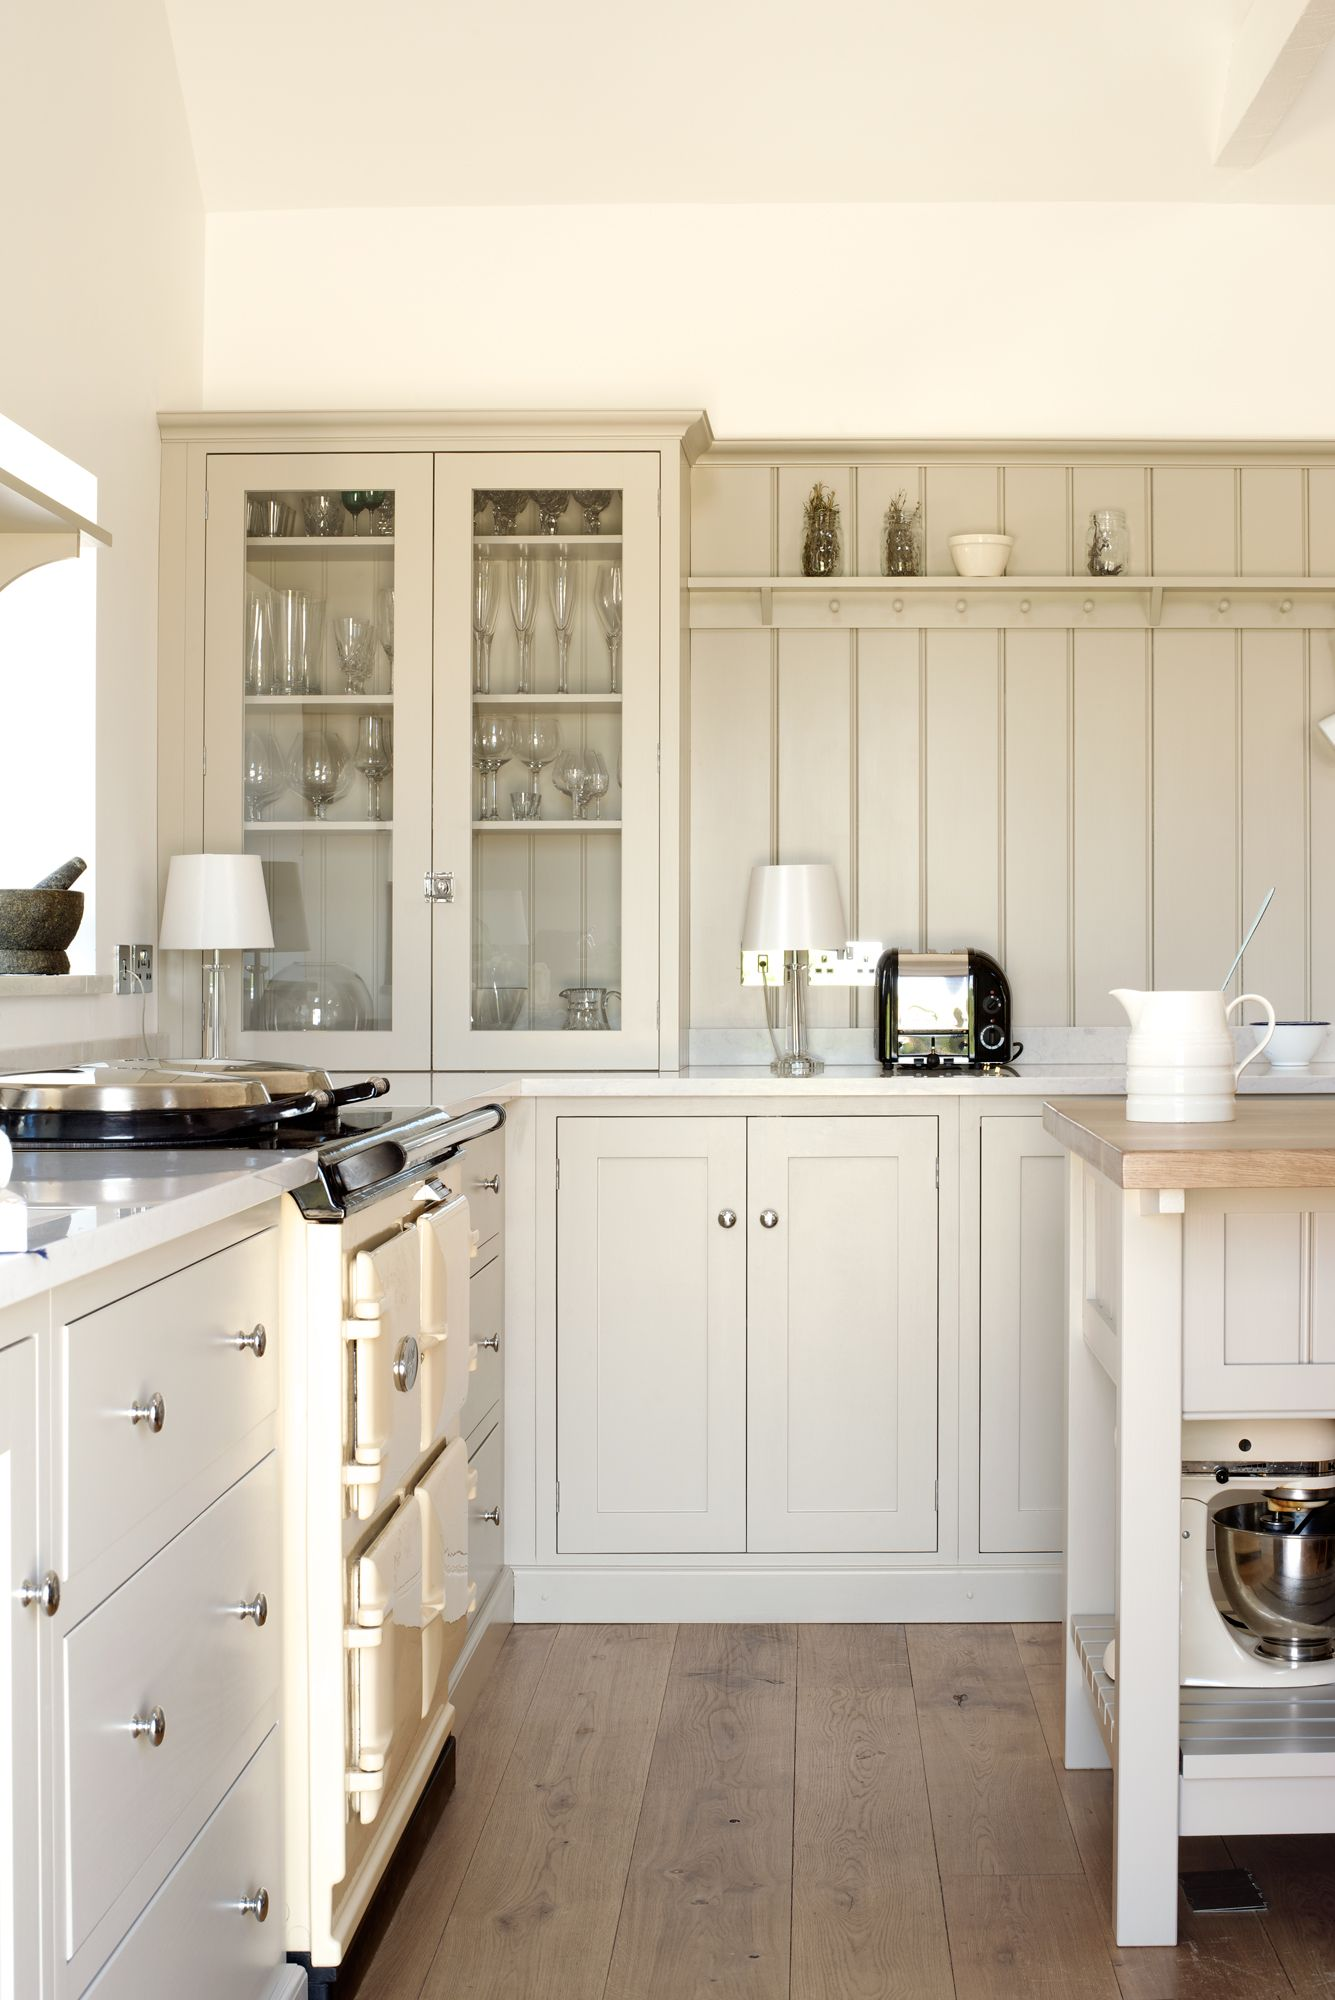 Kitchen Setting The Real Shaker Kitchen By Devol Painted In Our Favourite